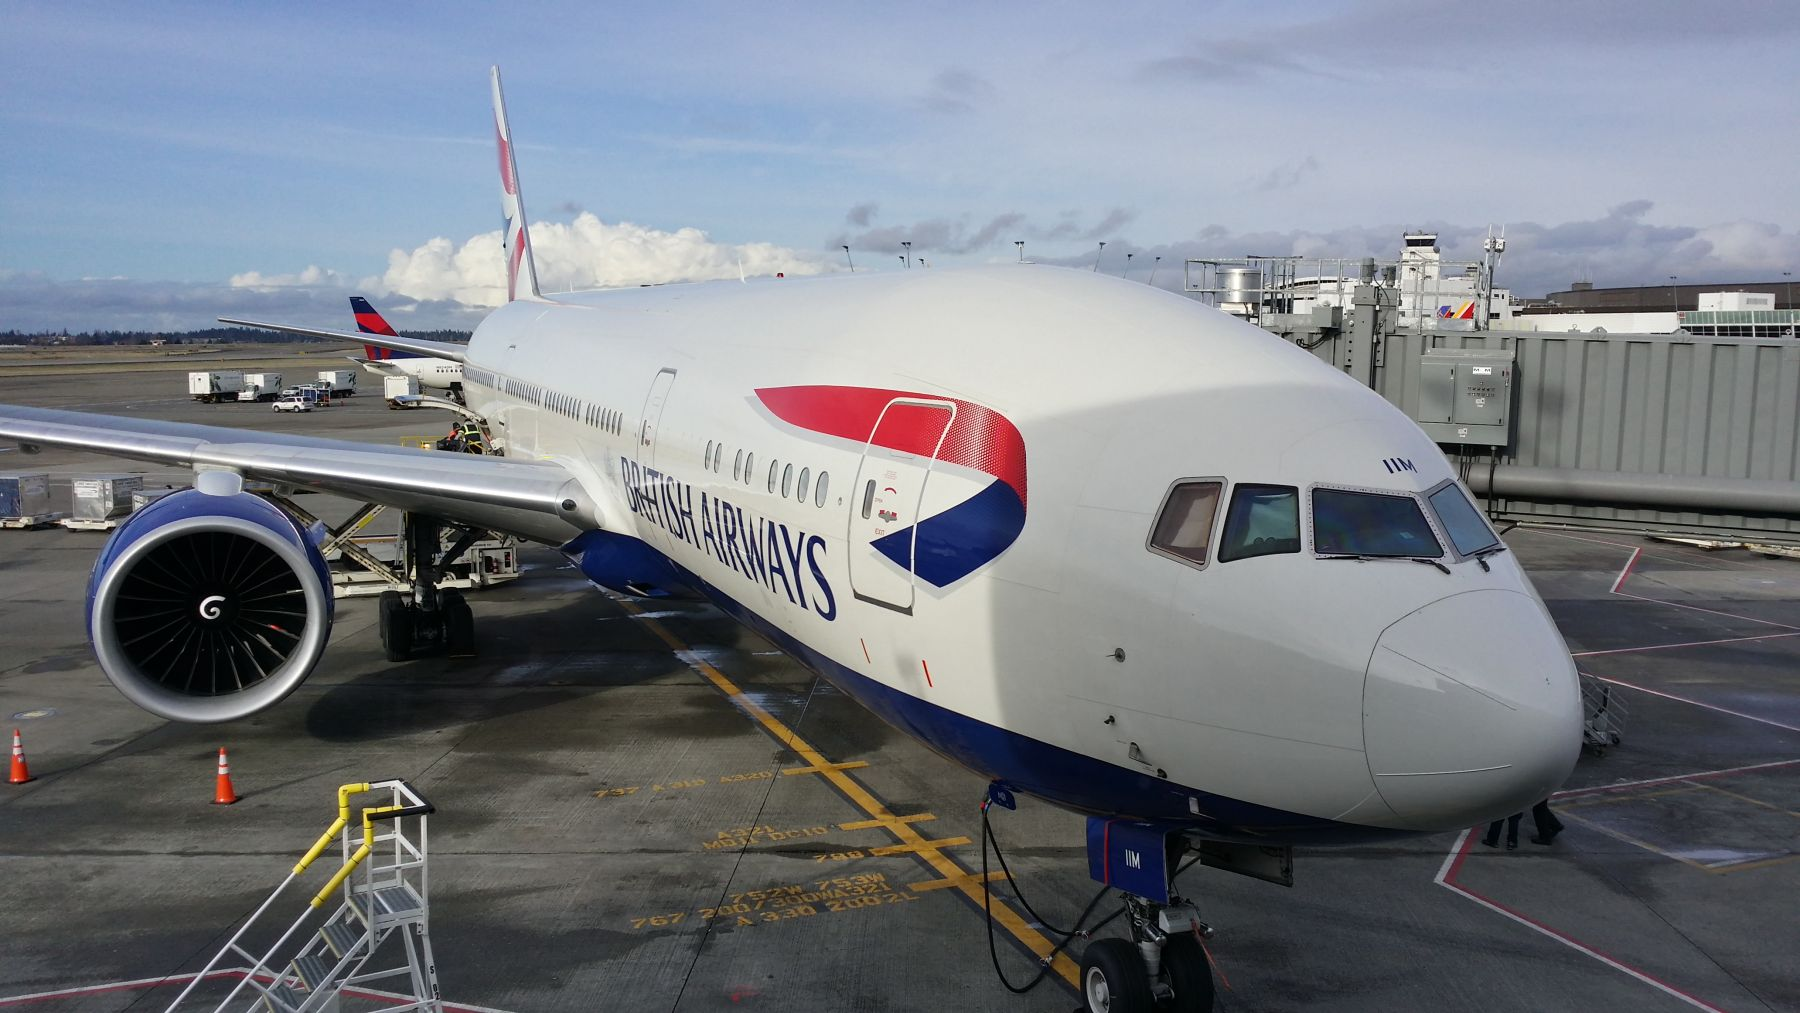 My First Intercontinental Trip with British Airways